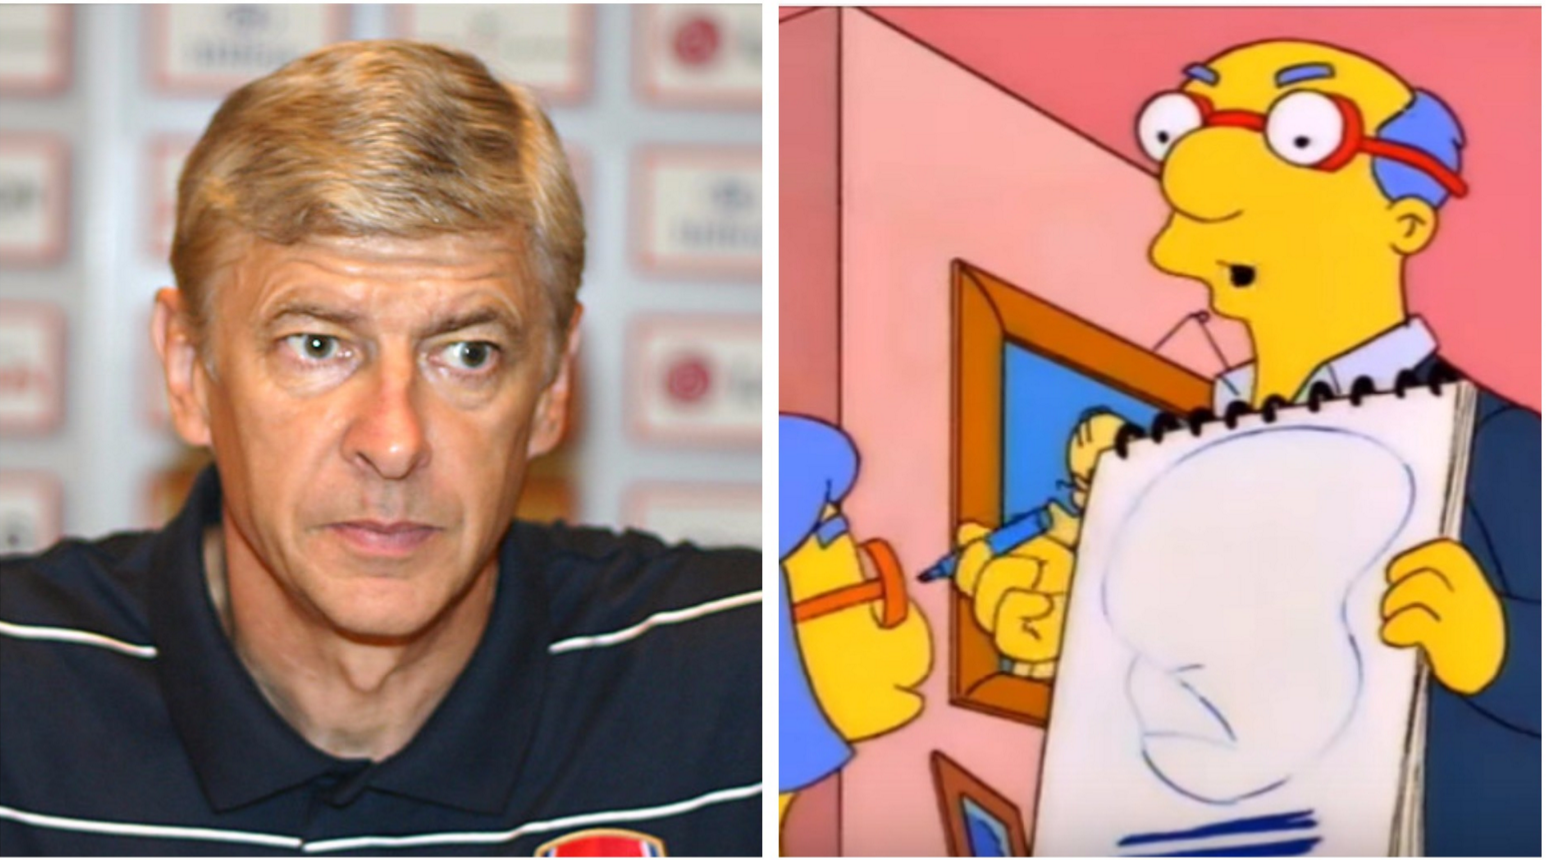 Wenger and Kirk